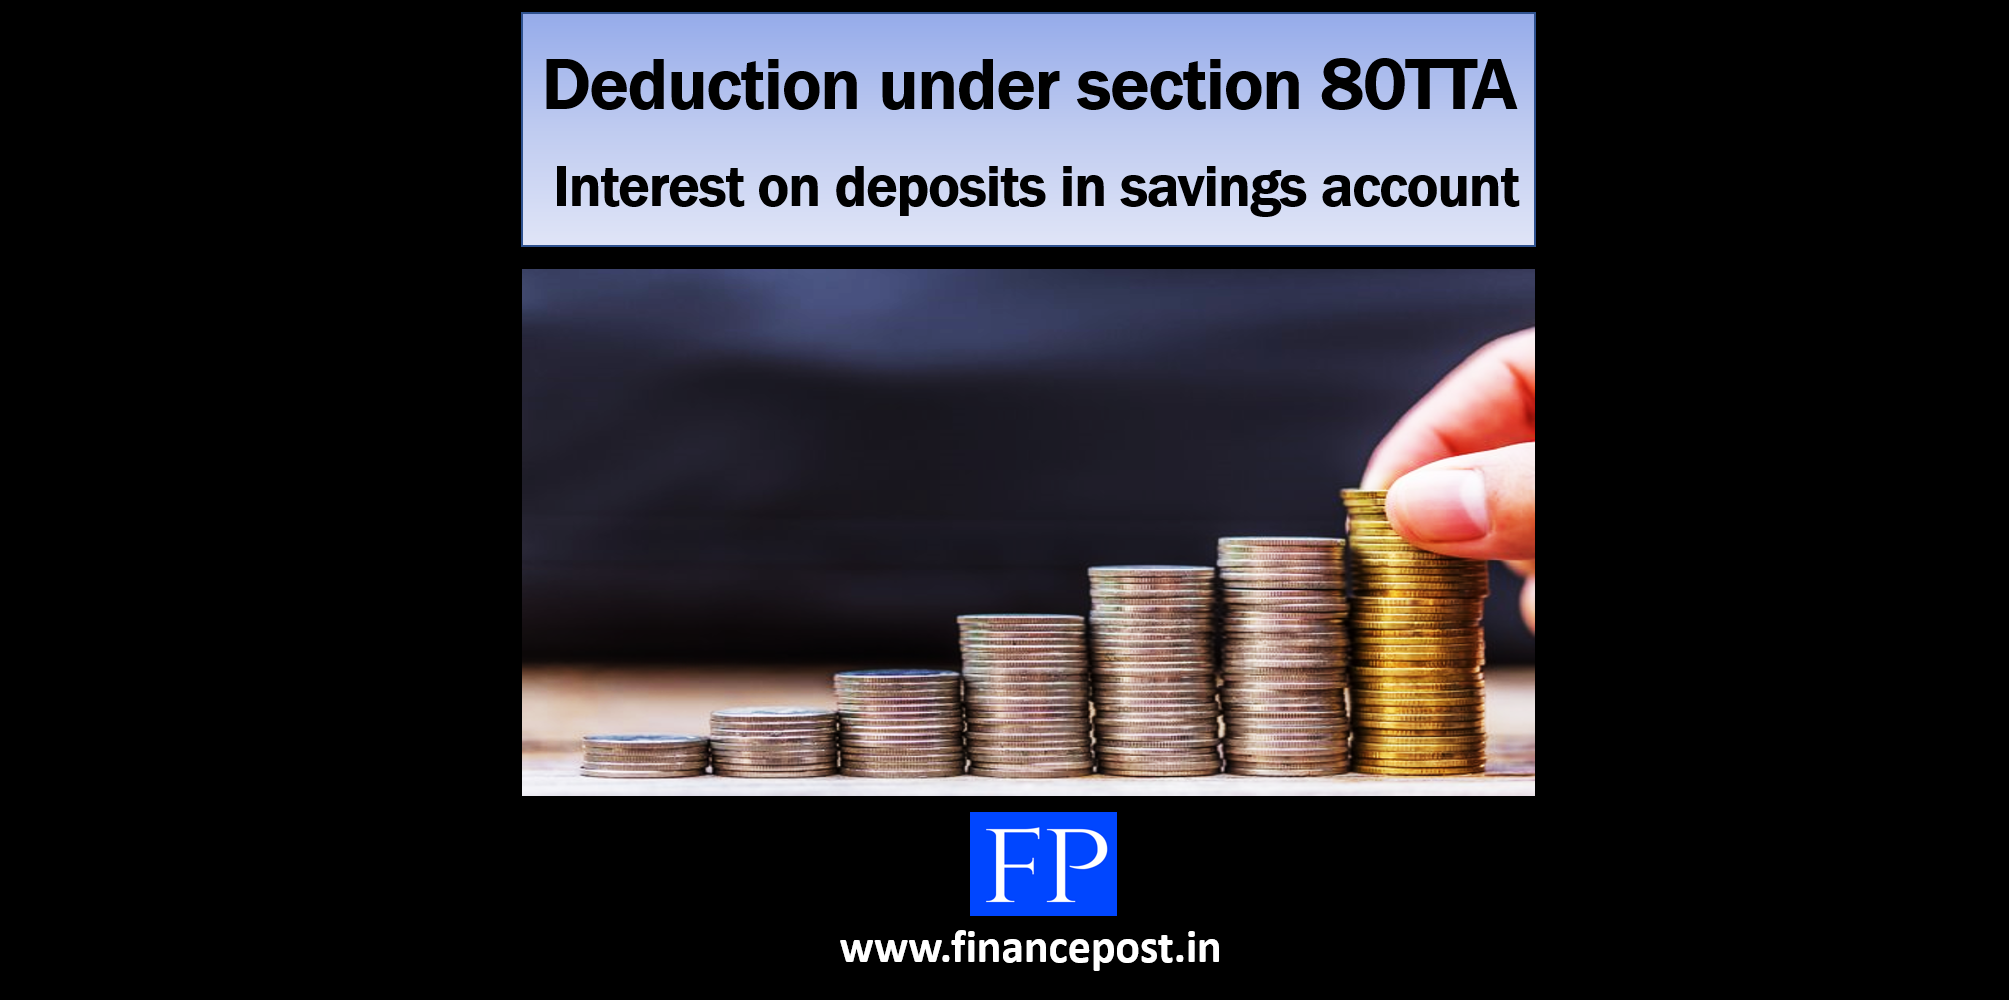 Deduction under section 80TTA